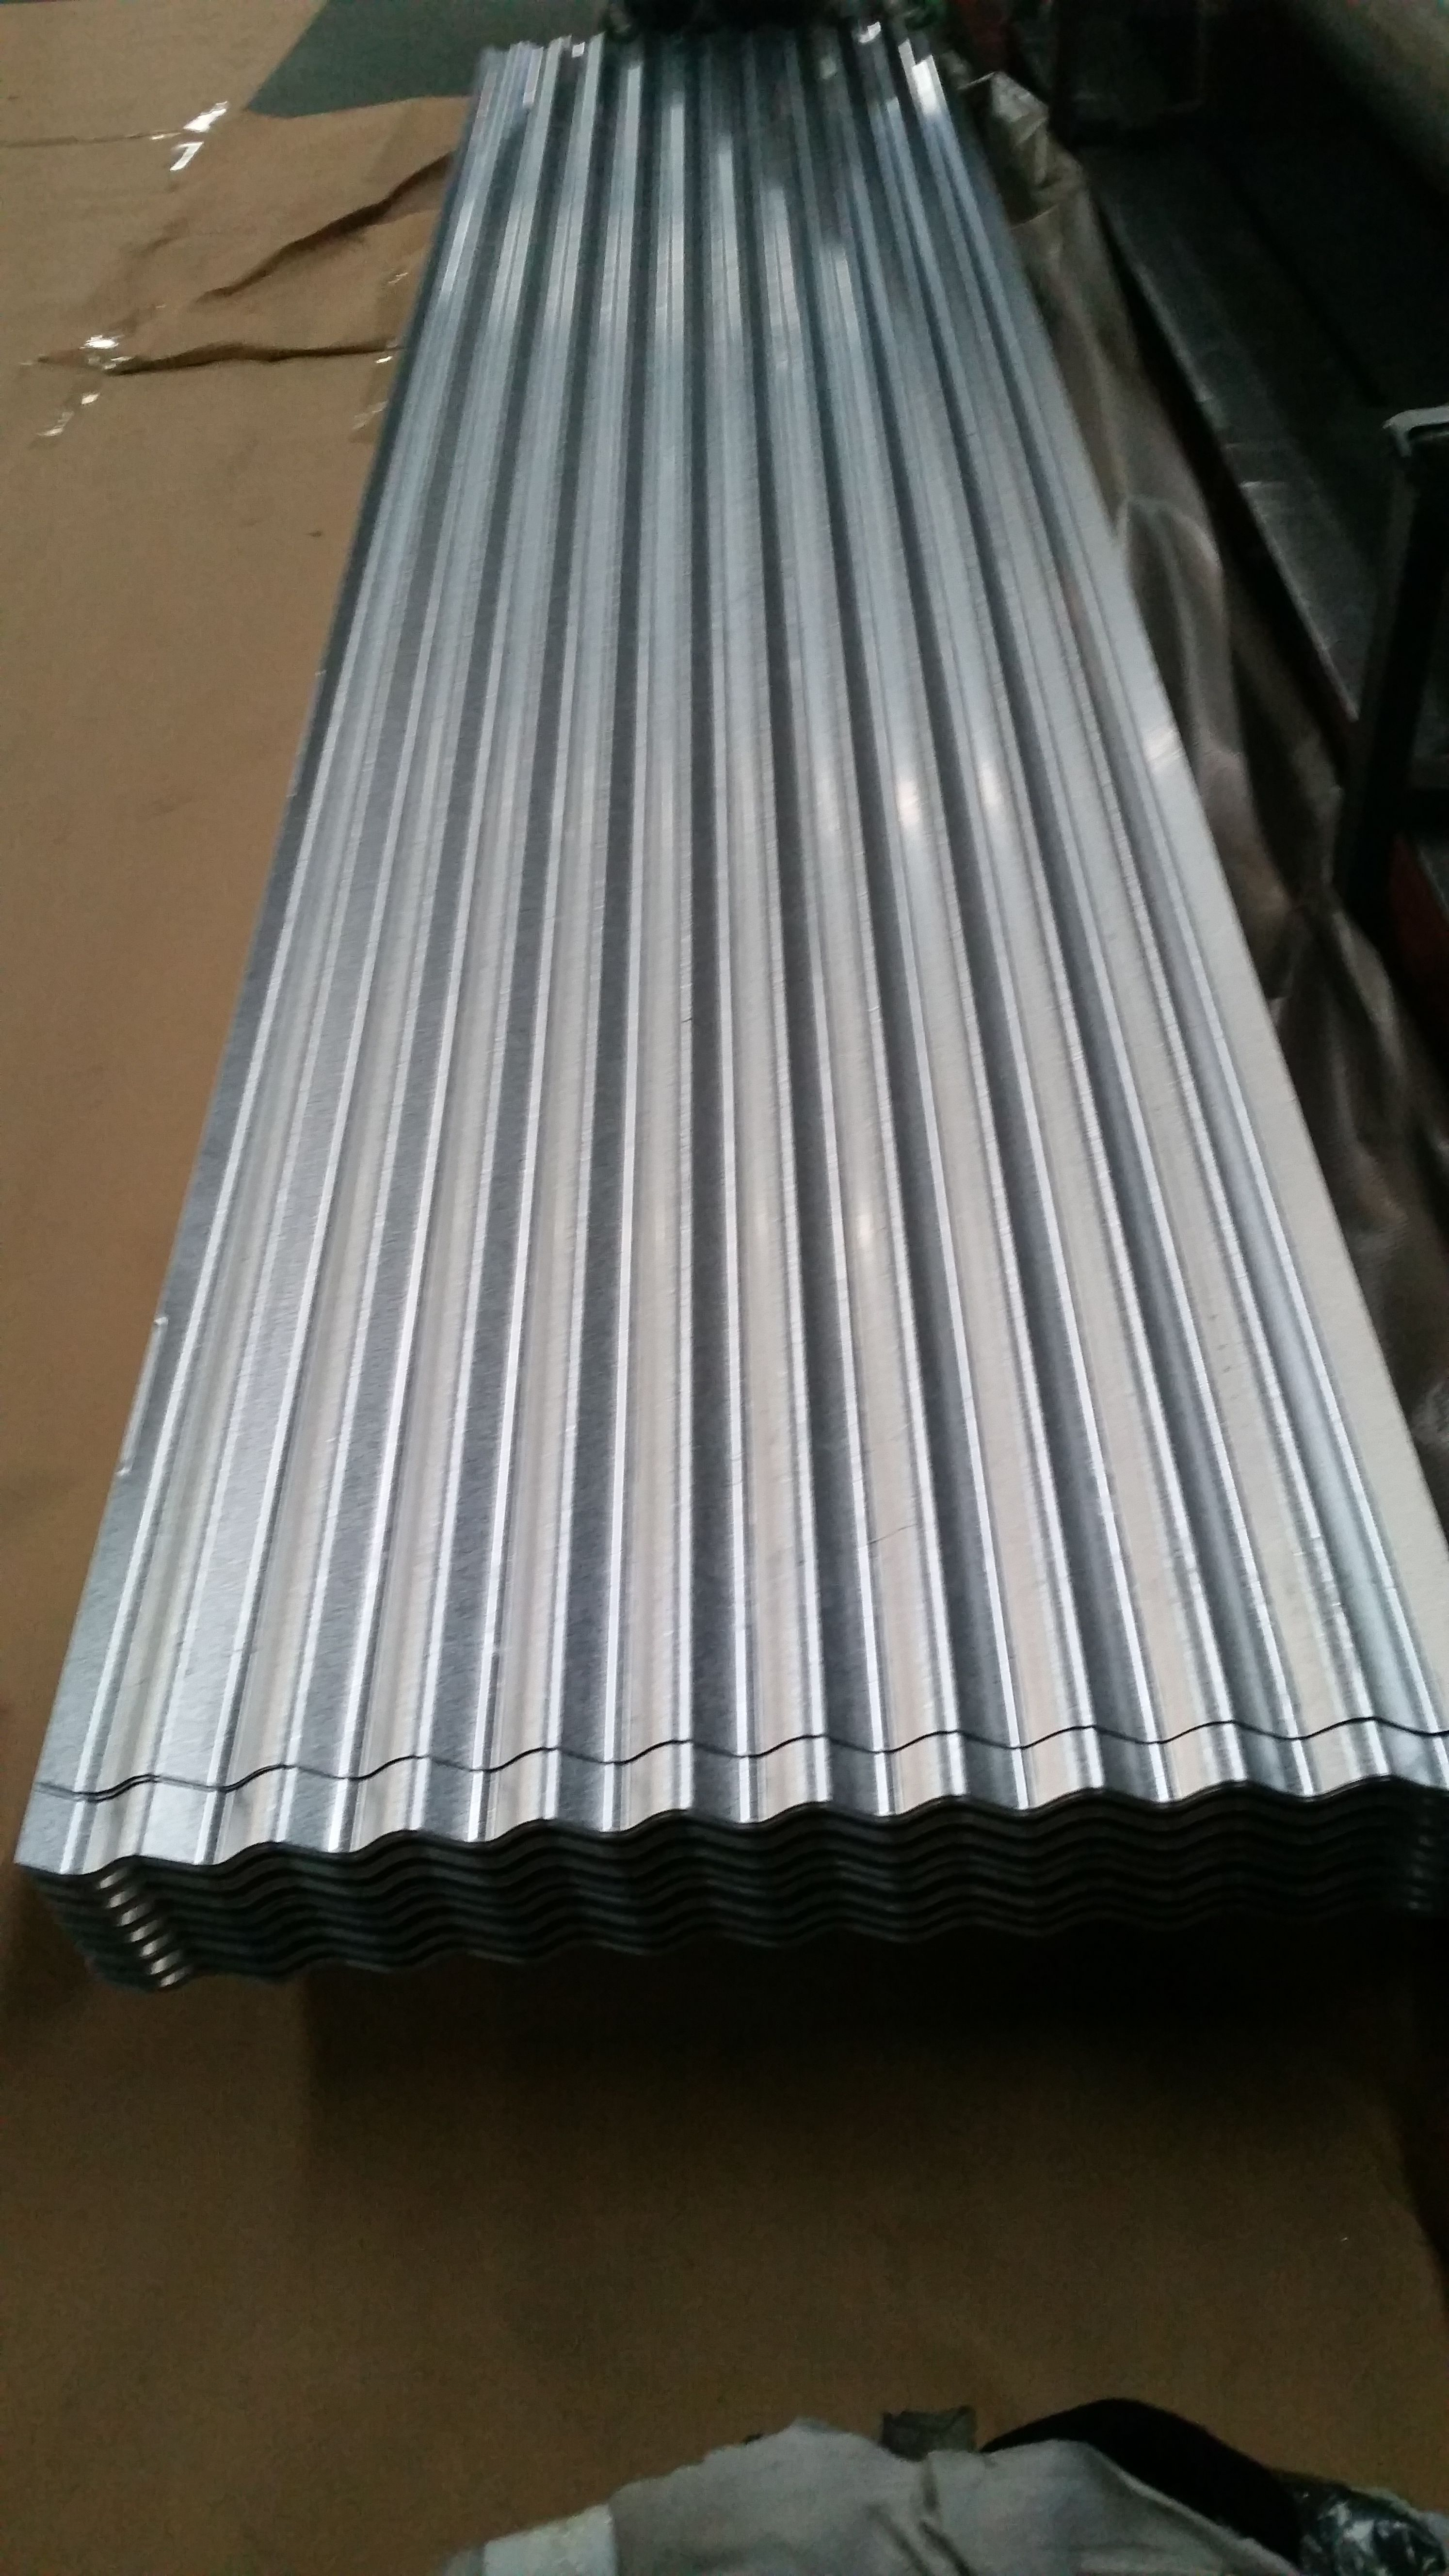 Astm A 792 M99 Steel Coated With Zinc Aluminum Exporting To Chile Galvanized Steel Sheet Steel Sheet Iron Sheet